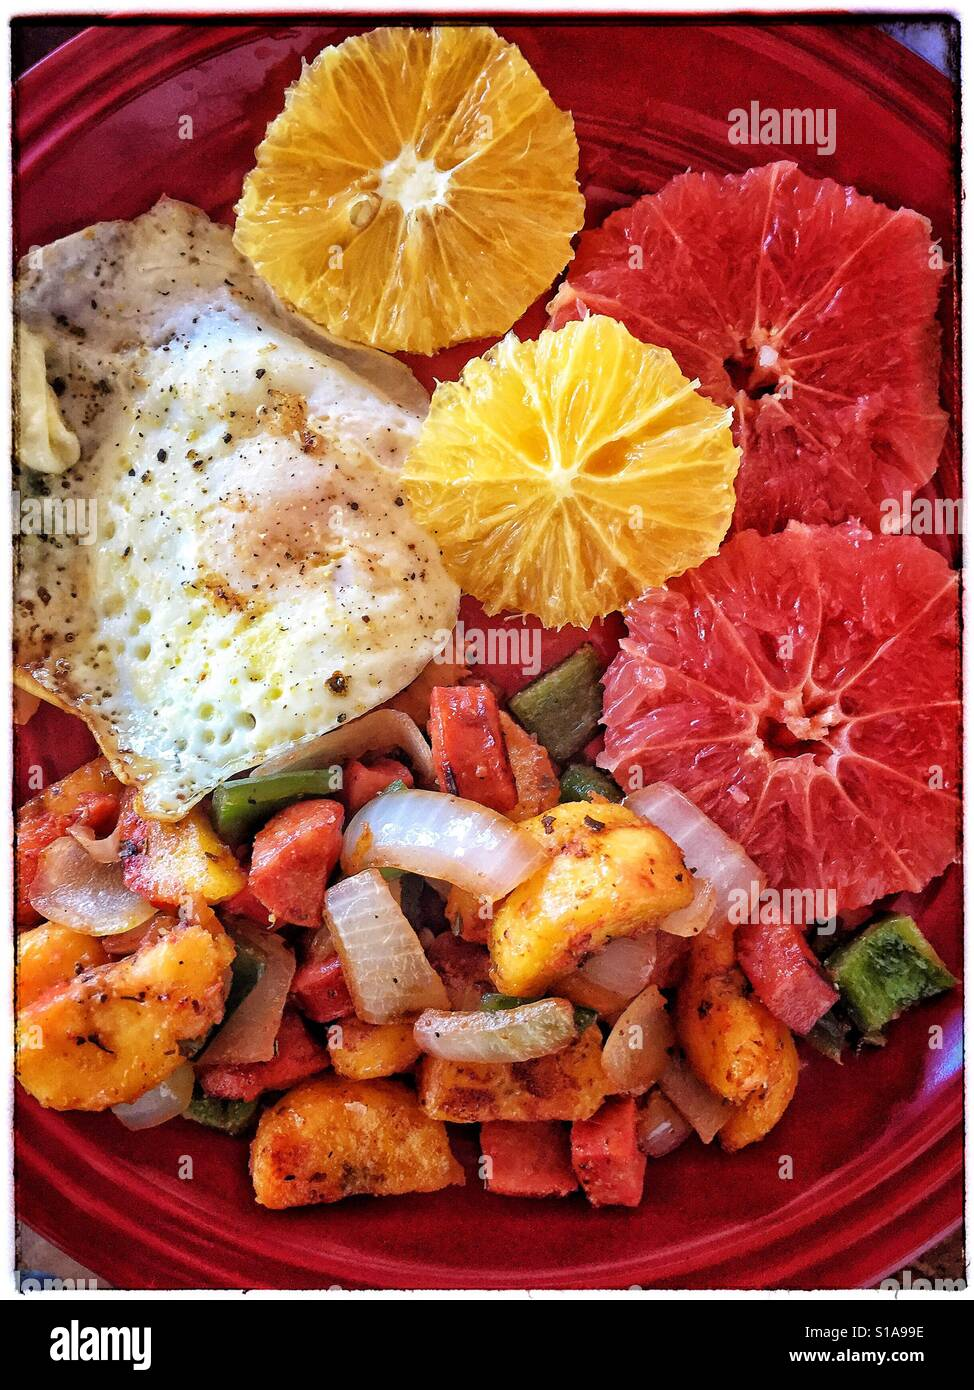 A plate is filled with a colorful variety of delicious breakfast foods including a fried egg, citrus slices, and Stock Photo